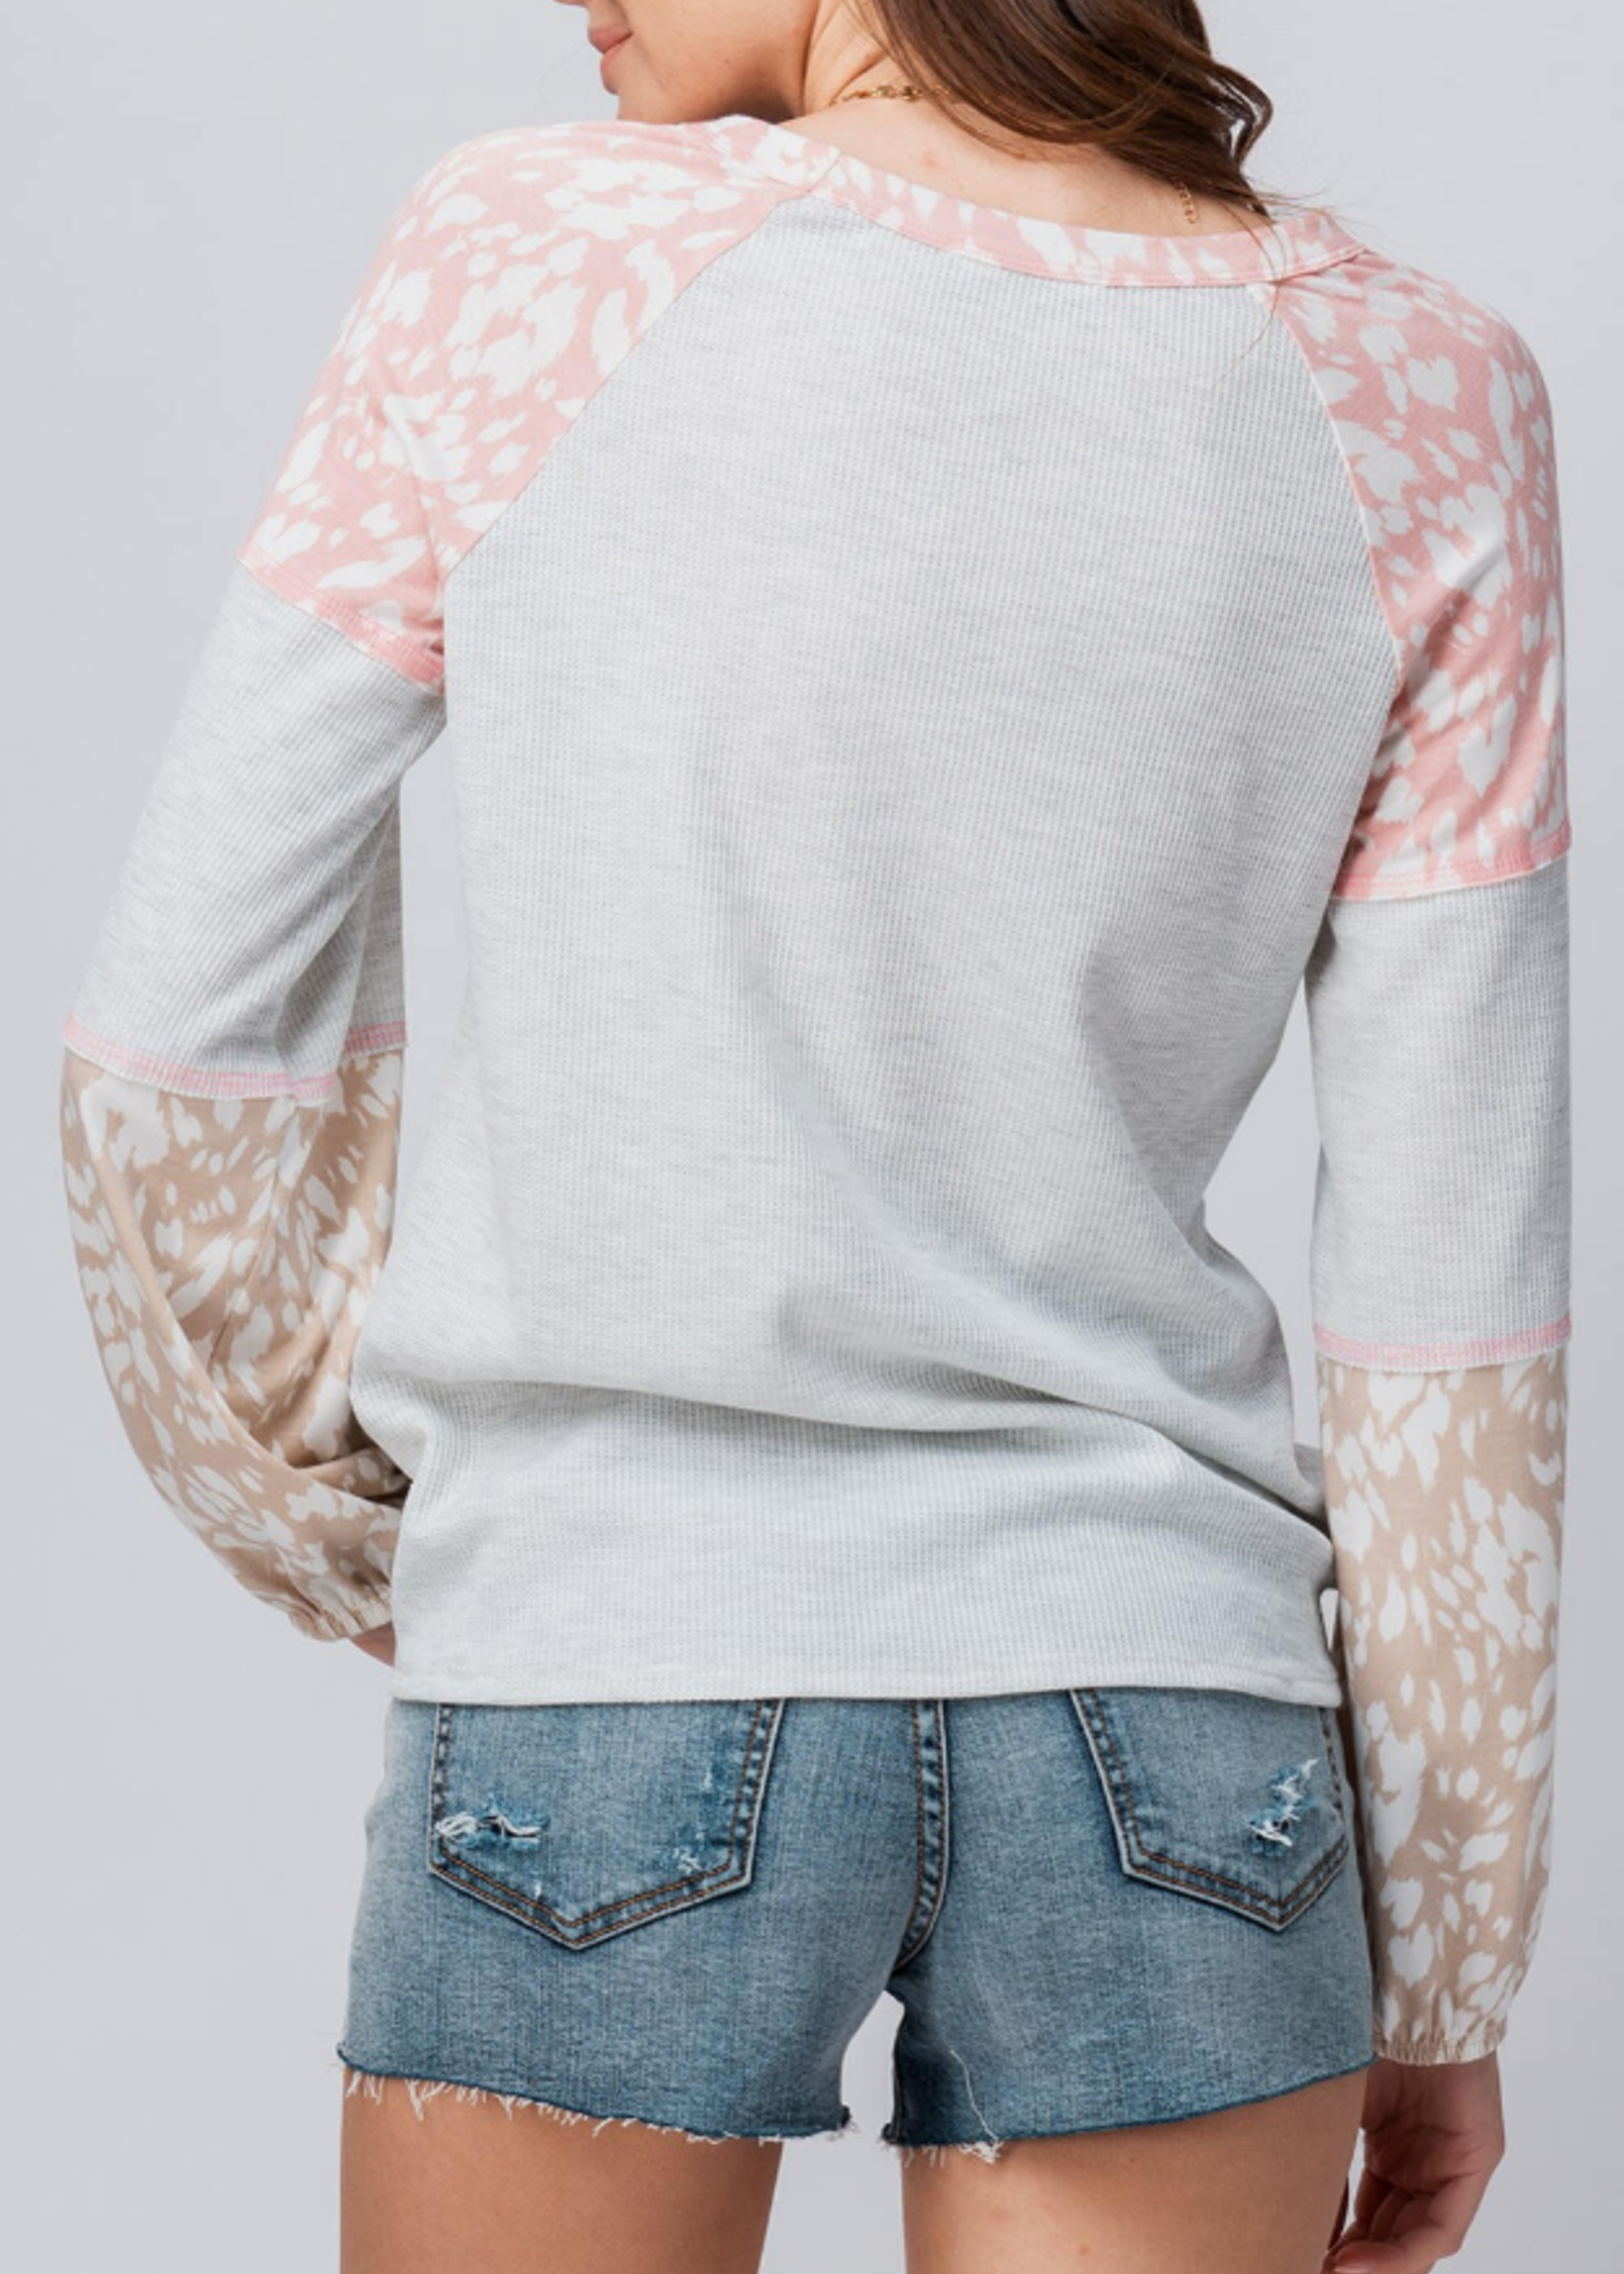 Thermal Knit Color Block - Heather